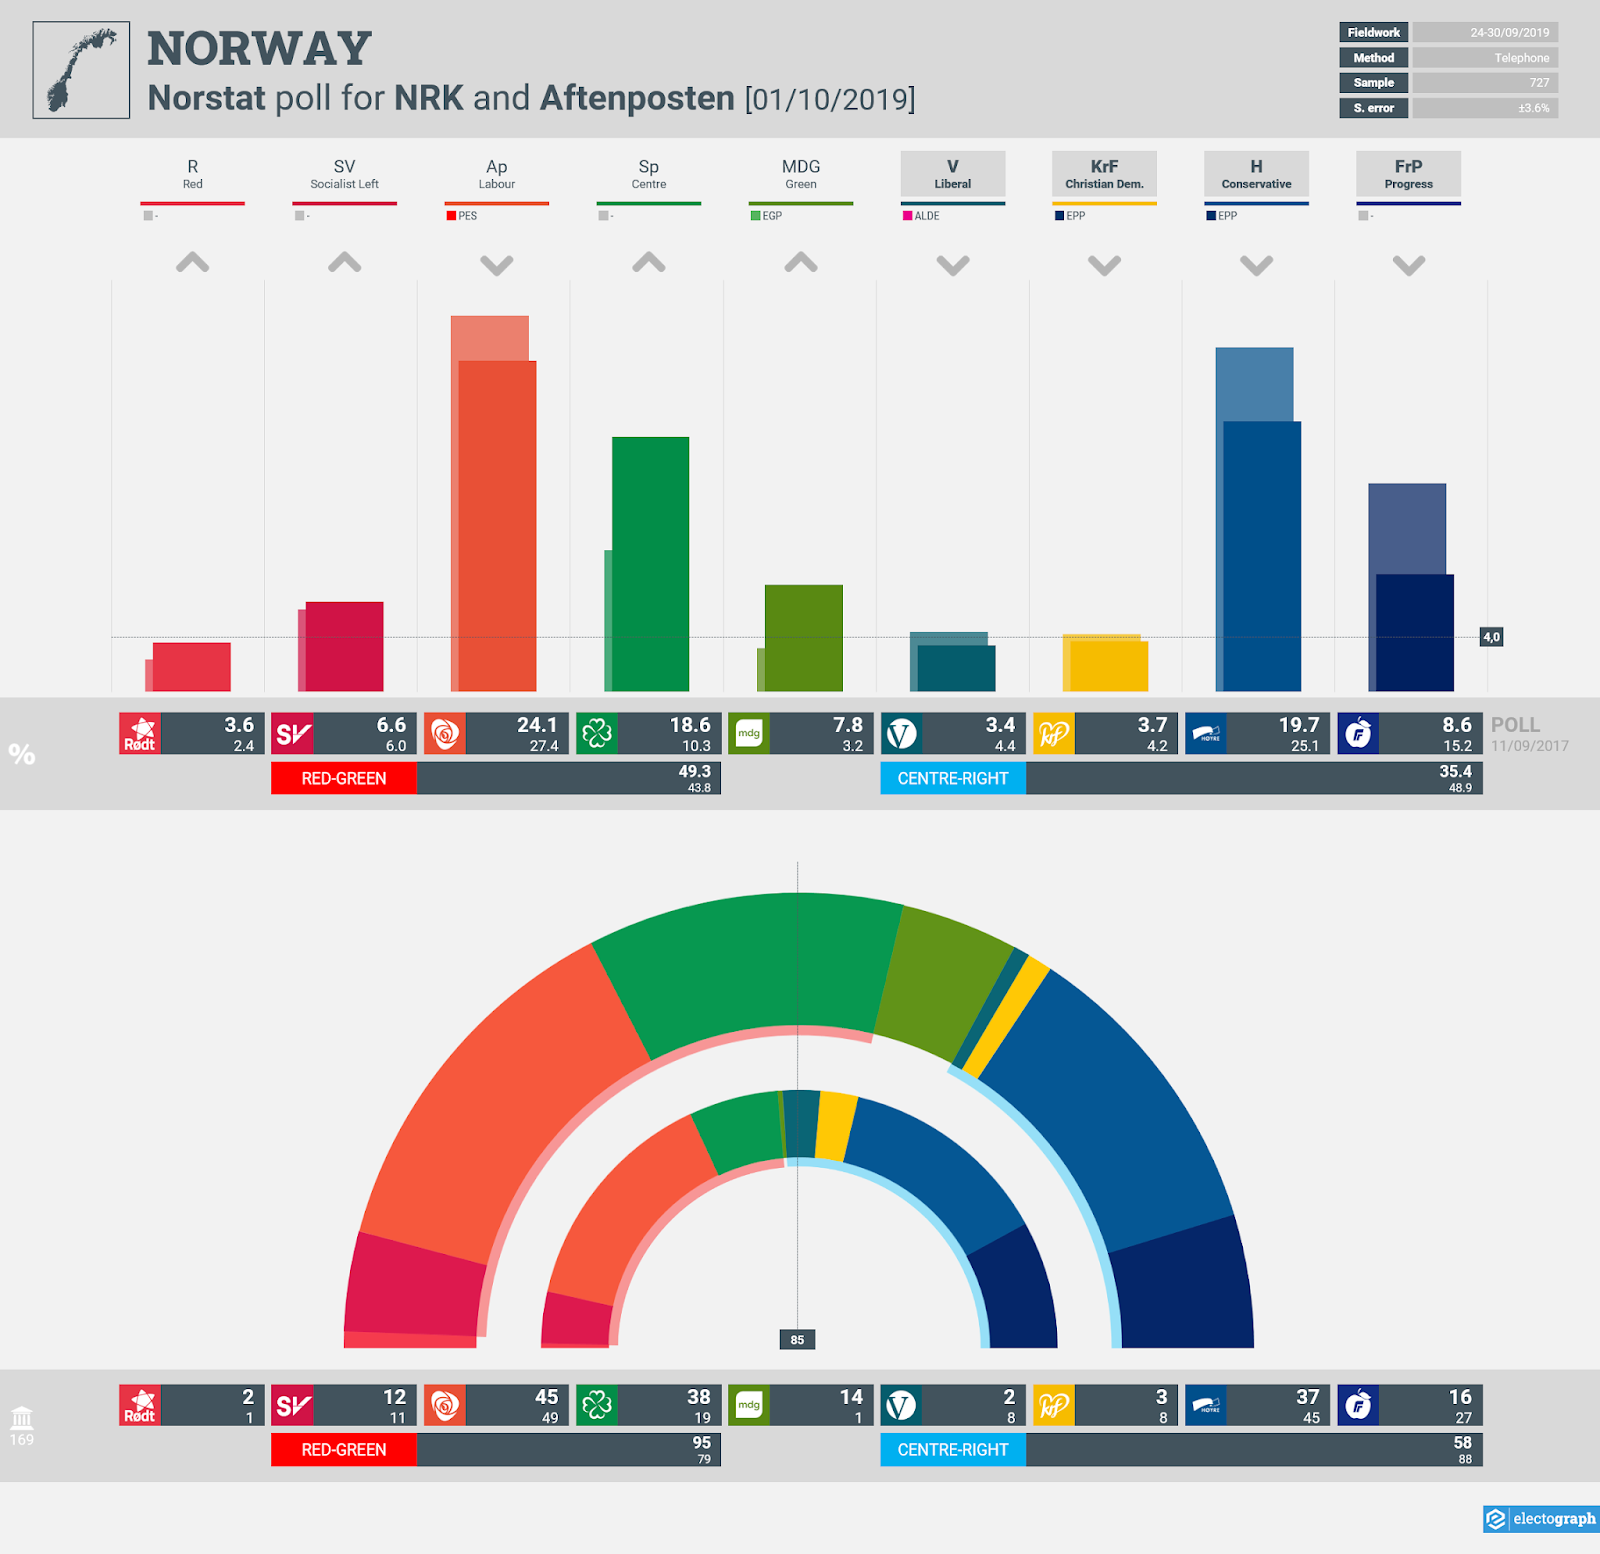 NORWAY: Norstat poll chart for NRK and Aftenposten, 1 October 2019